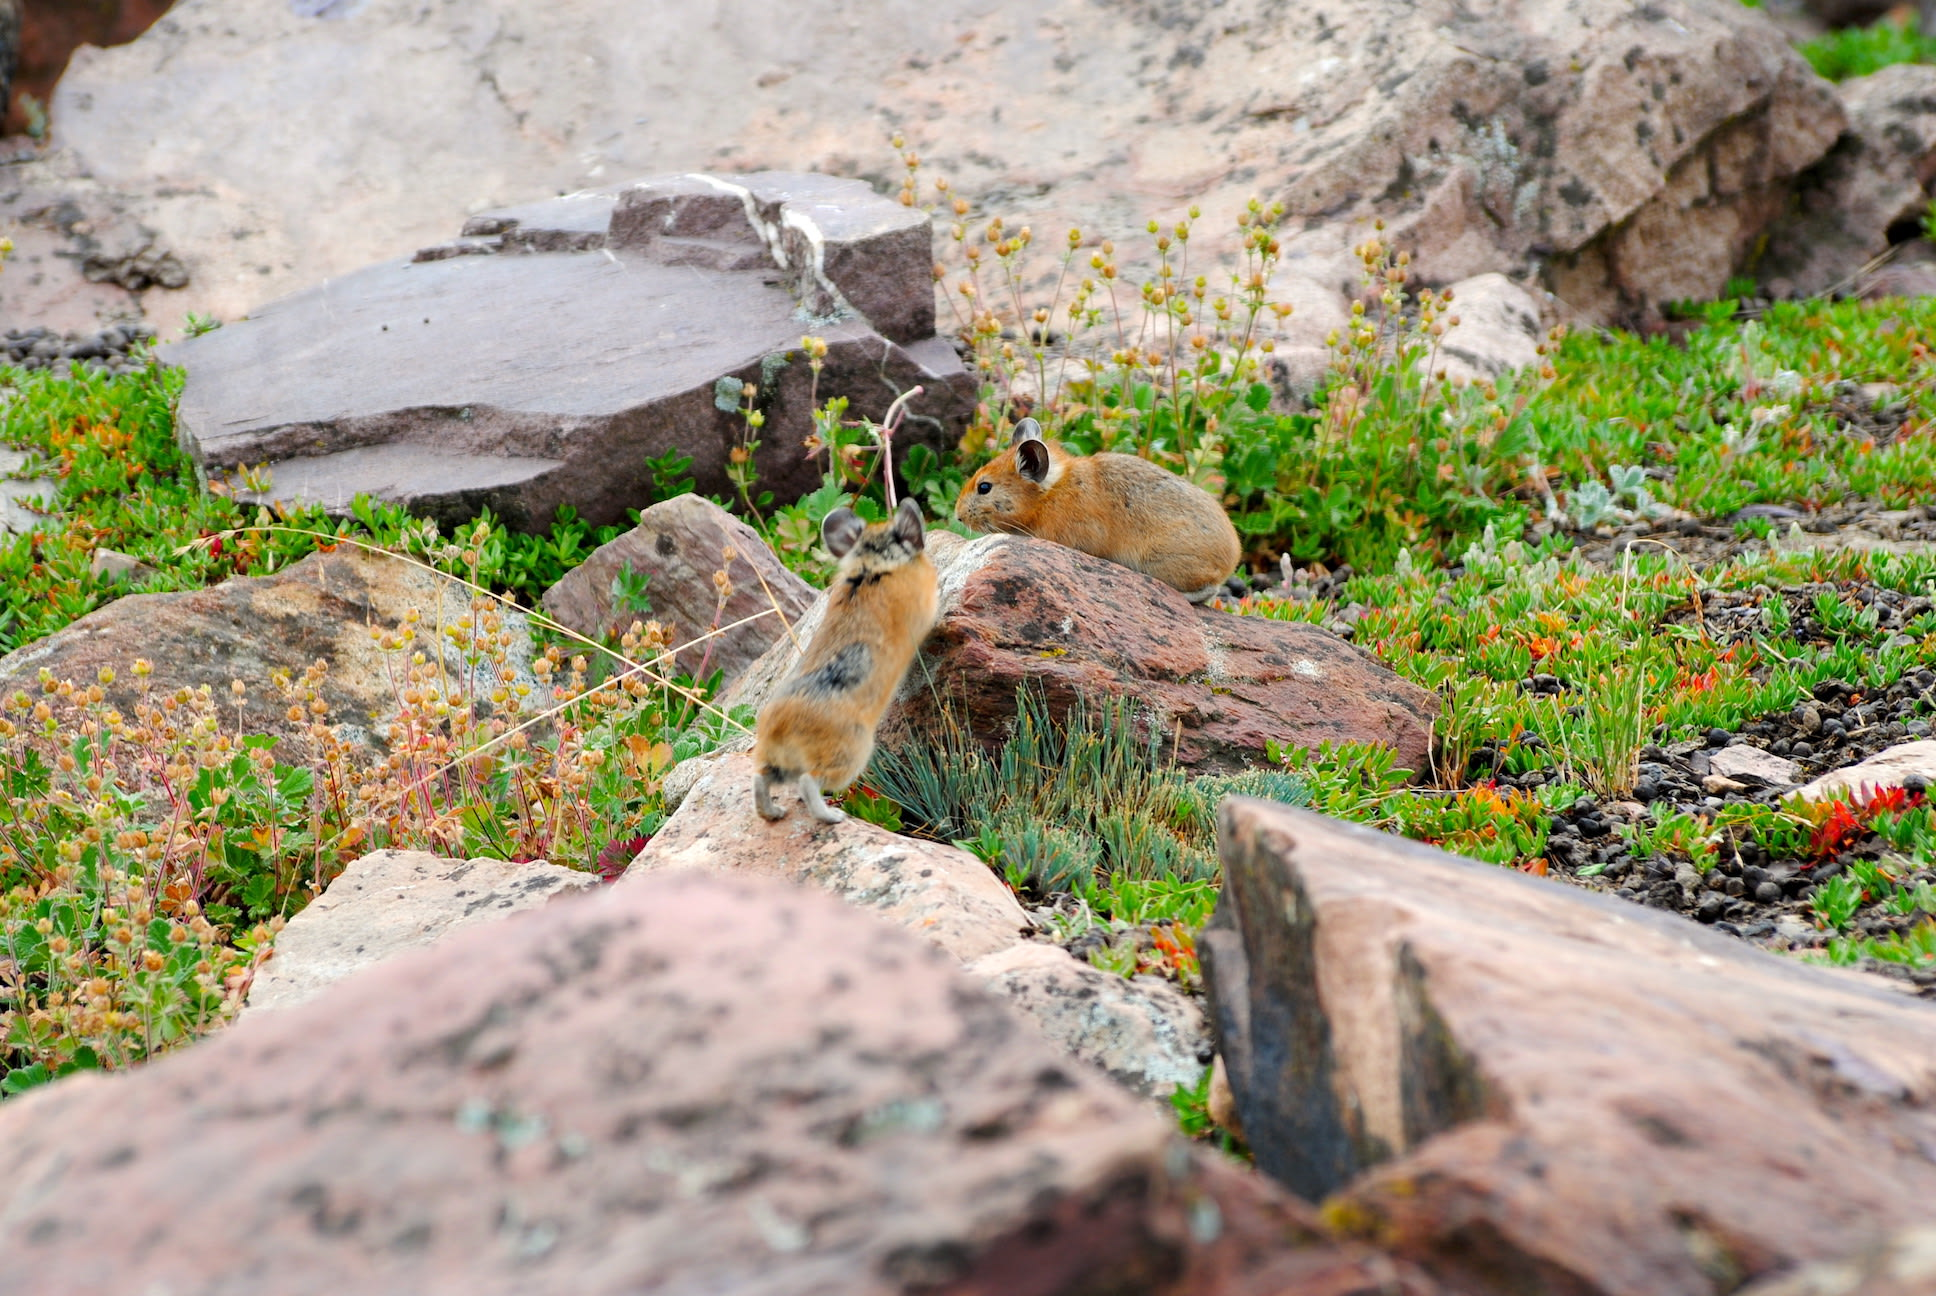 Two Royle's pikas play with each other in their favoured talus habitat, near Chandra Tal in the Upper Chandra Valley, Lahaul, Himachal Pradesh.